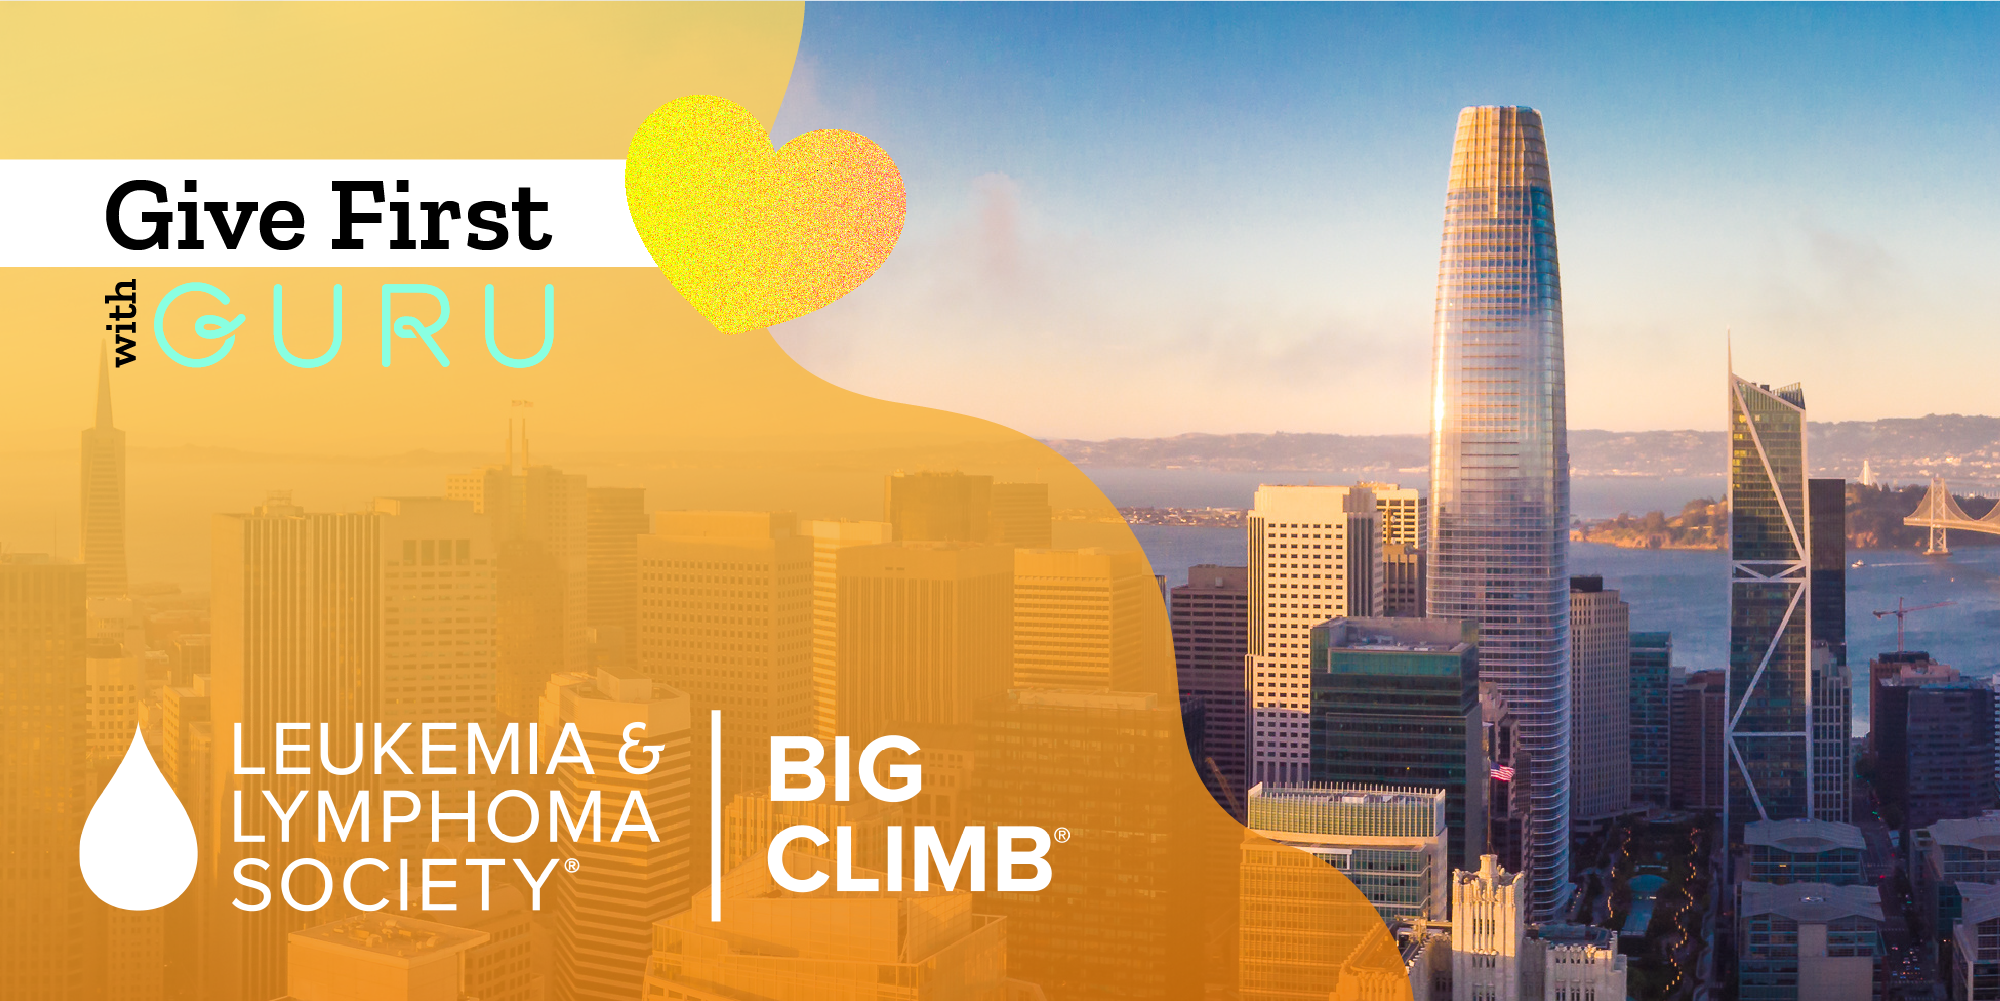 Give First with Guru & The Big Climb